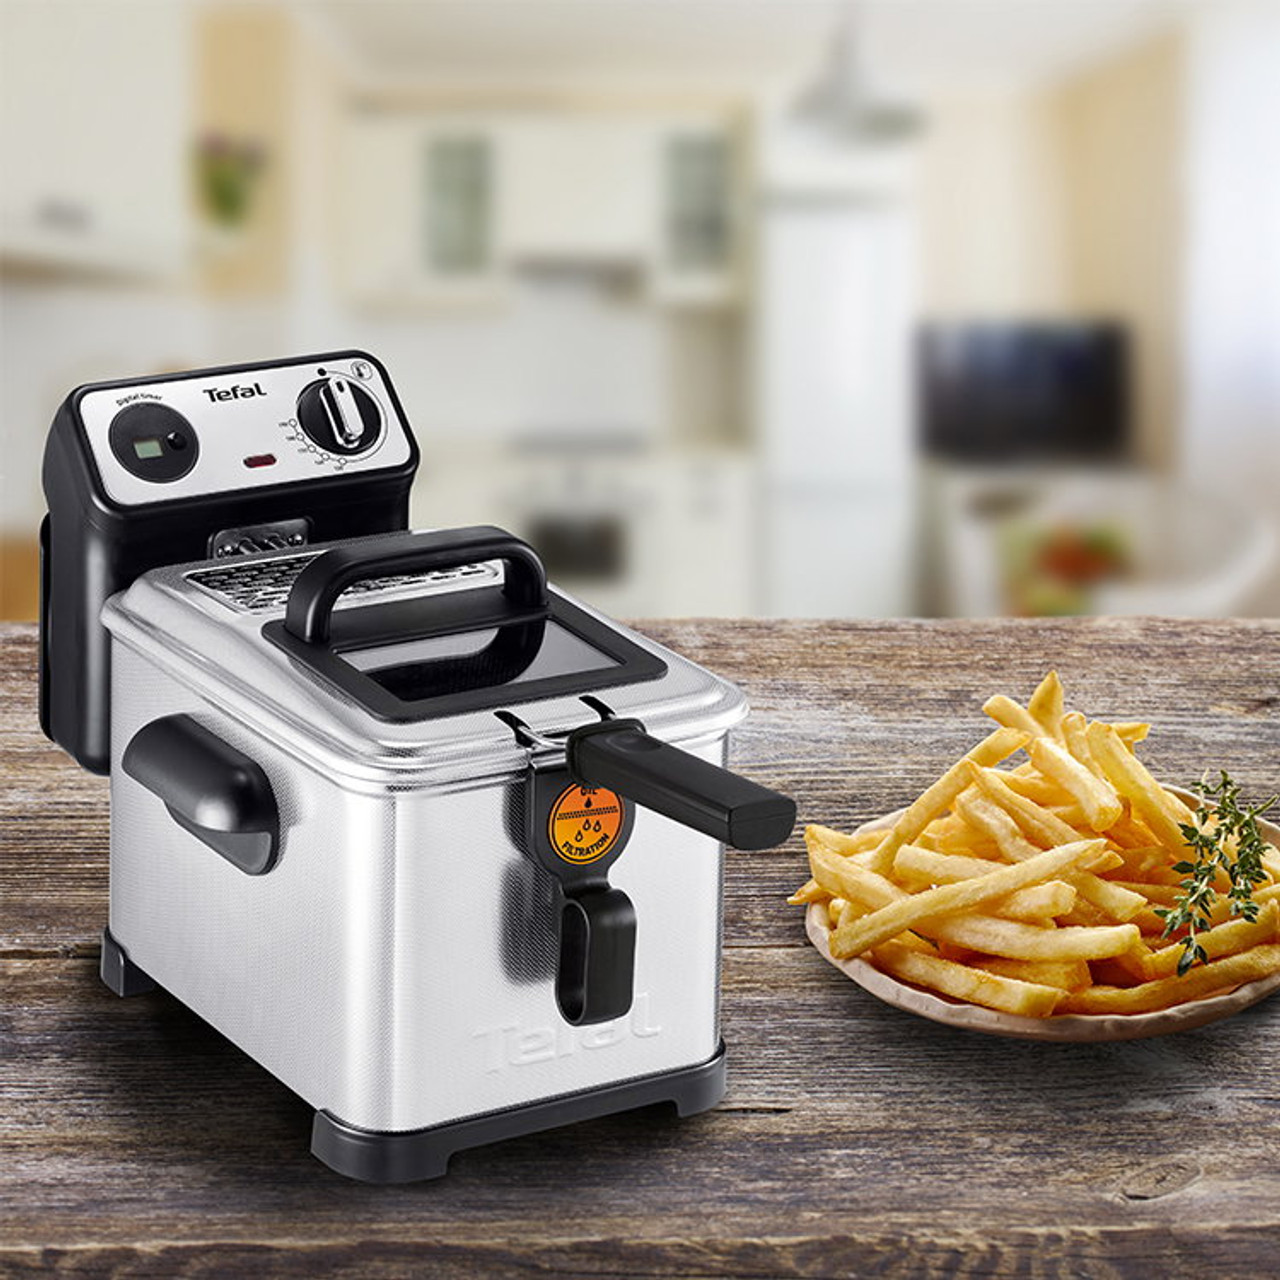 Tefal FR5181 Filtra Pro 2300W Deep Fryer with 4L Oil and 2.3KG Food Capacity